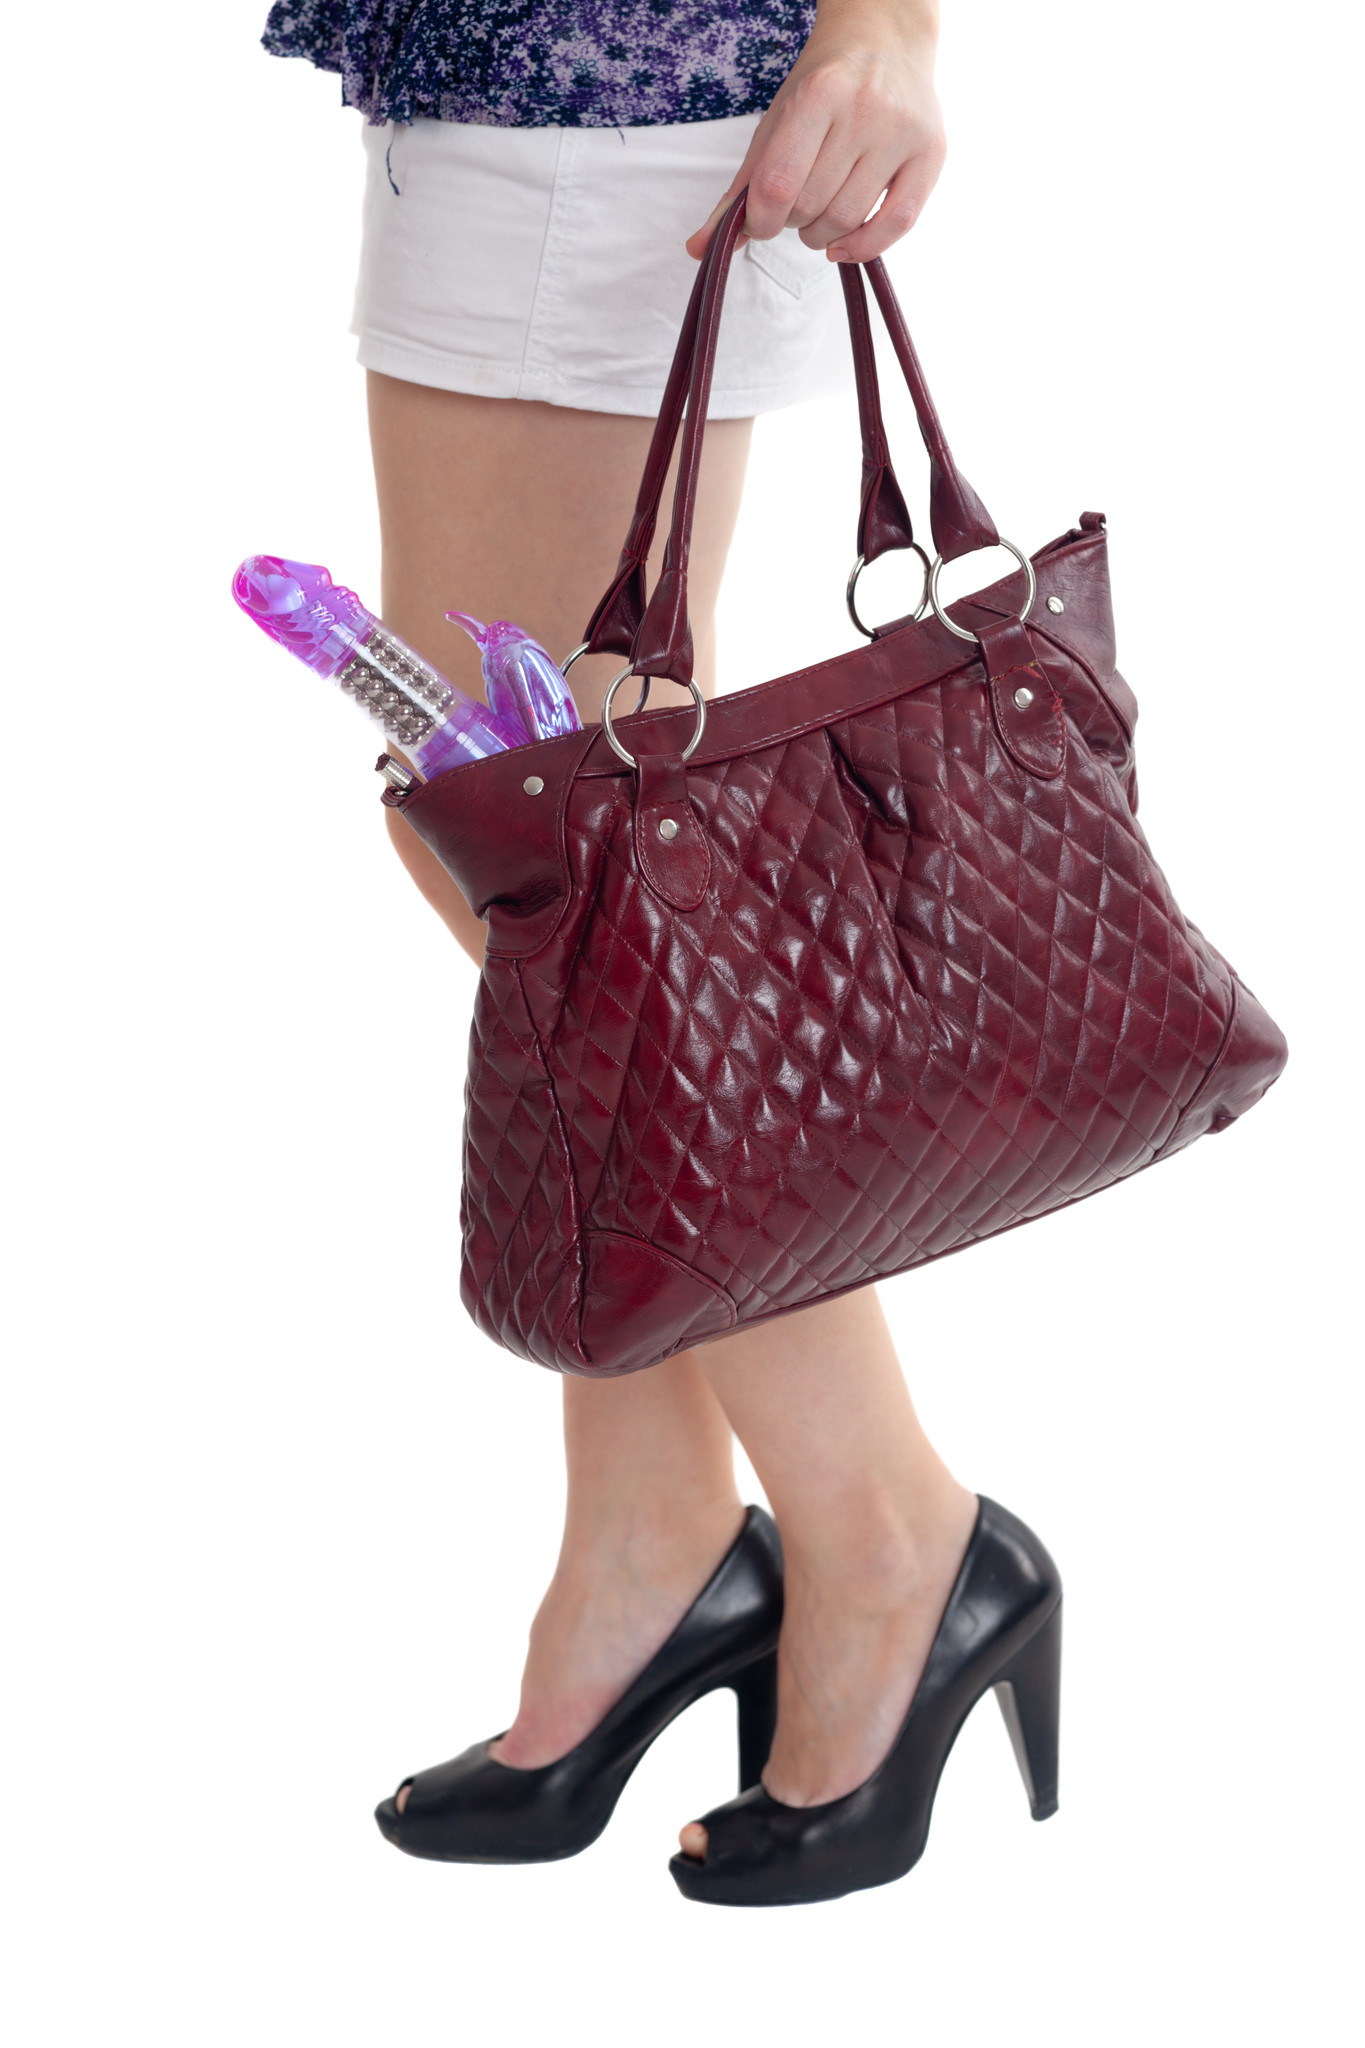 Woman walking holding purse with vibrator visible inside